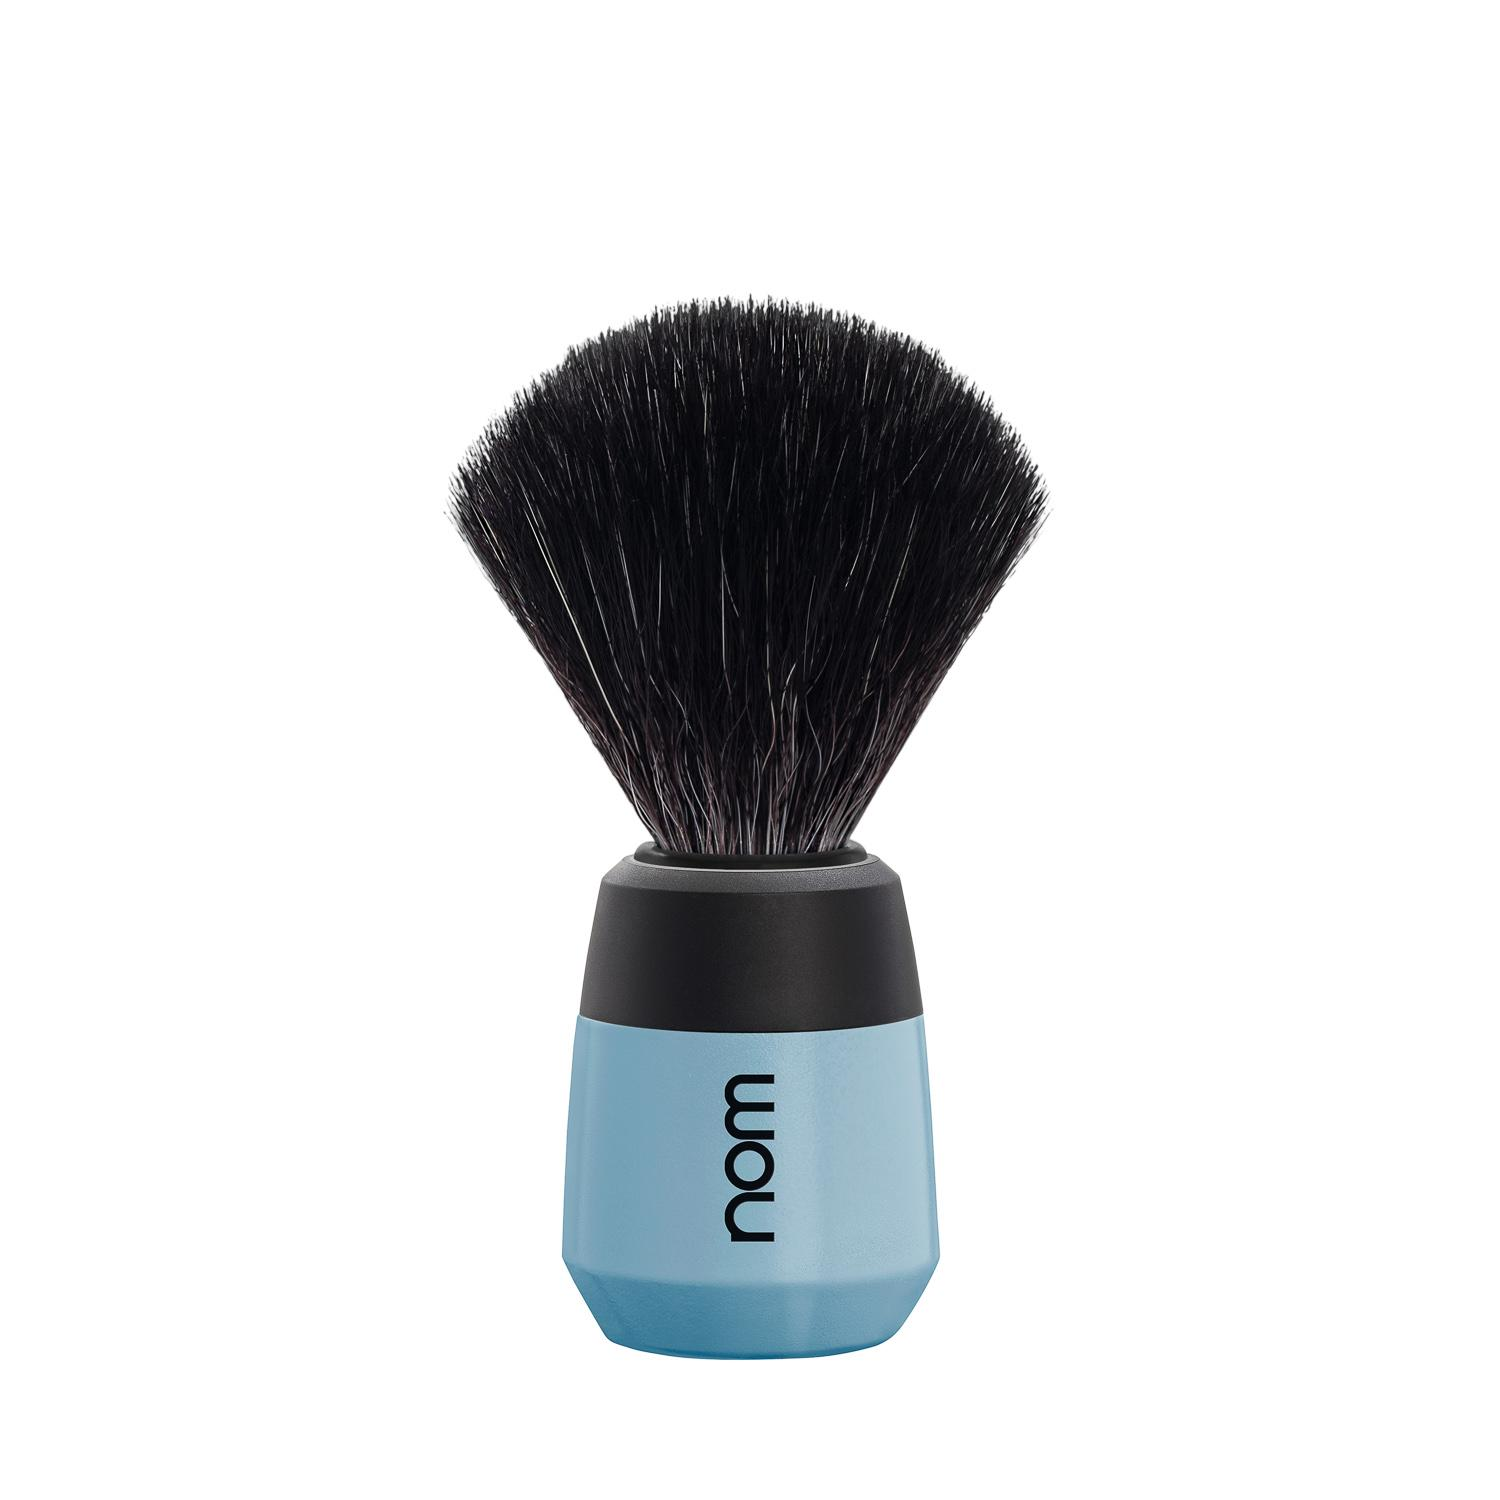 nom MAX, Fjord, Black Fibre Shaving Brush